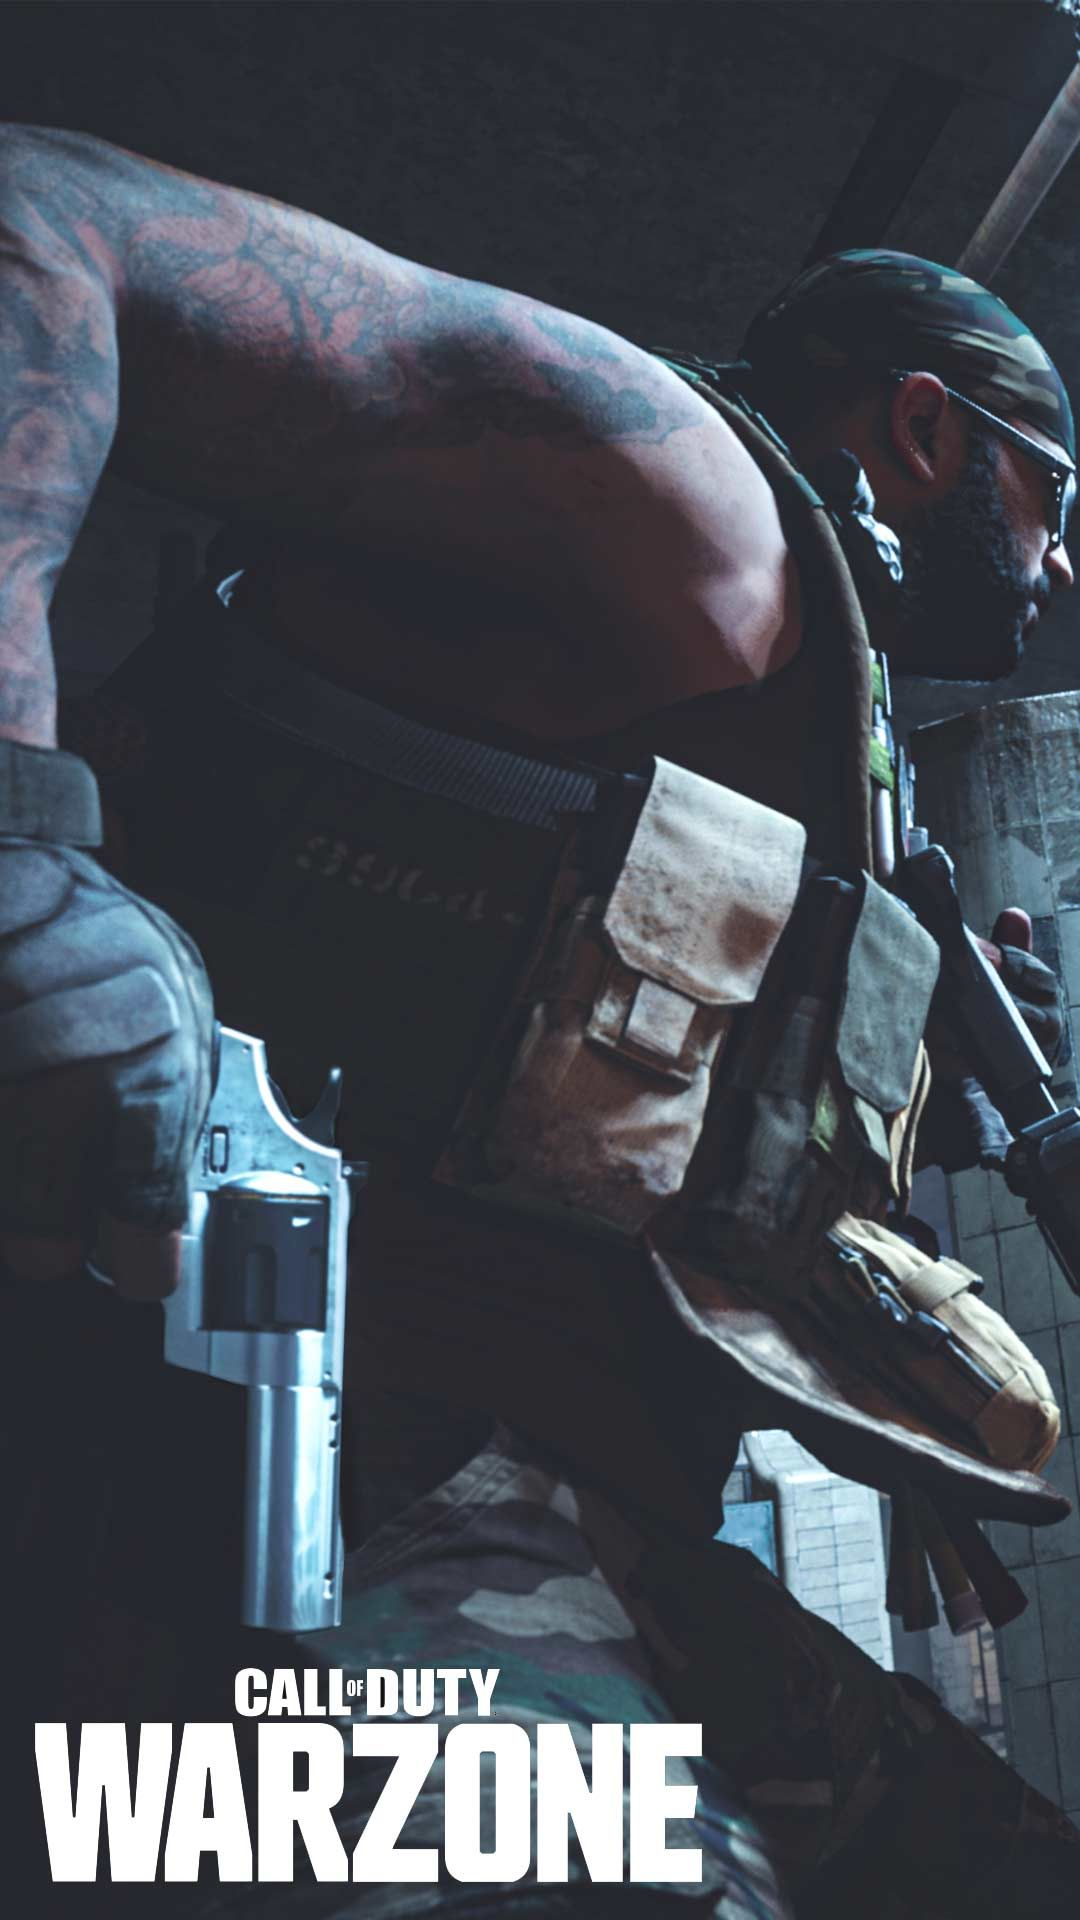 Call Of Duty Warzone Wallpaper Phone Backgrounds For Free Download In 2020 Call Of Duty Phone Backgrounds Android Lock Screen